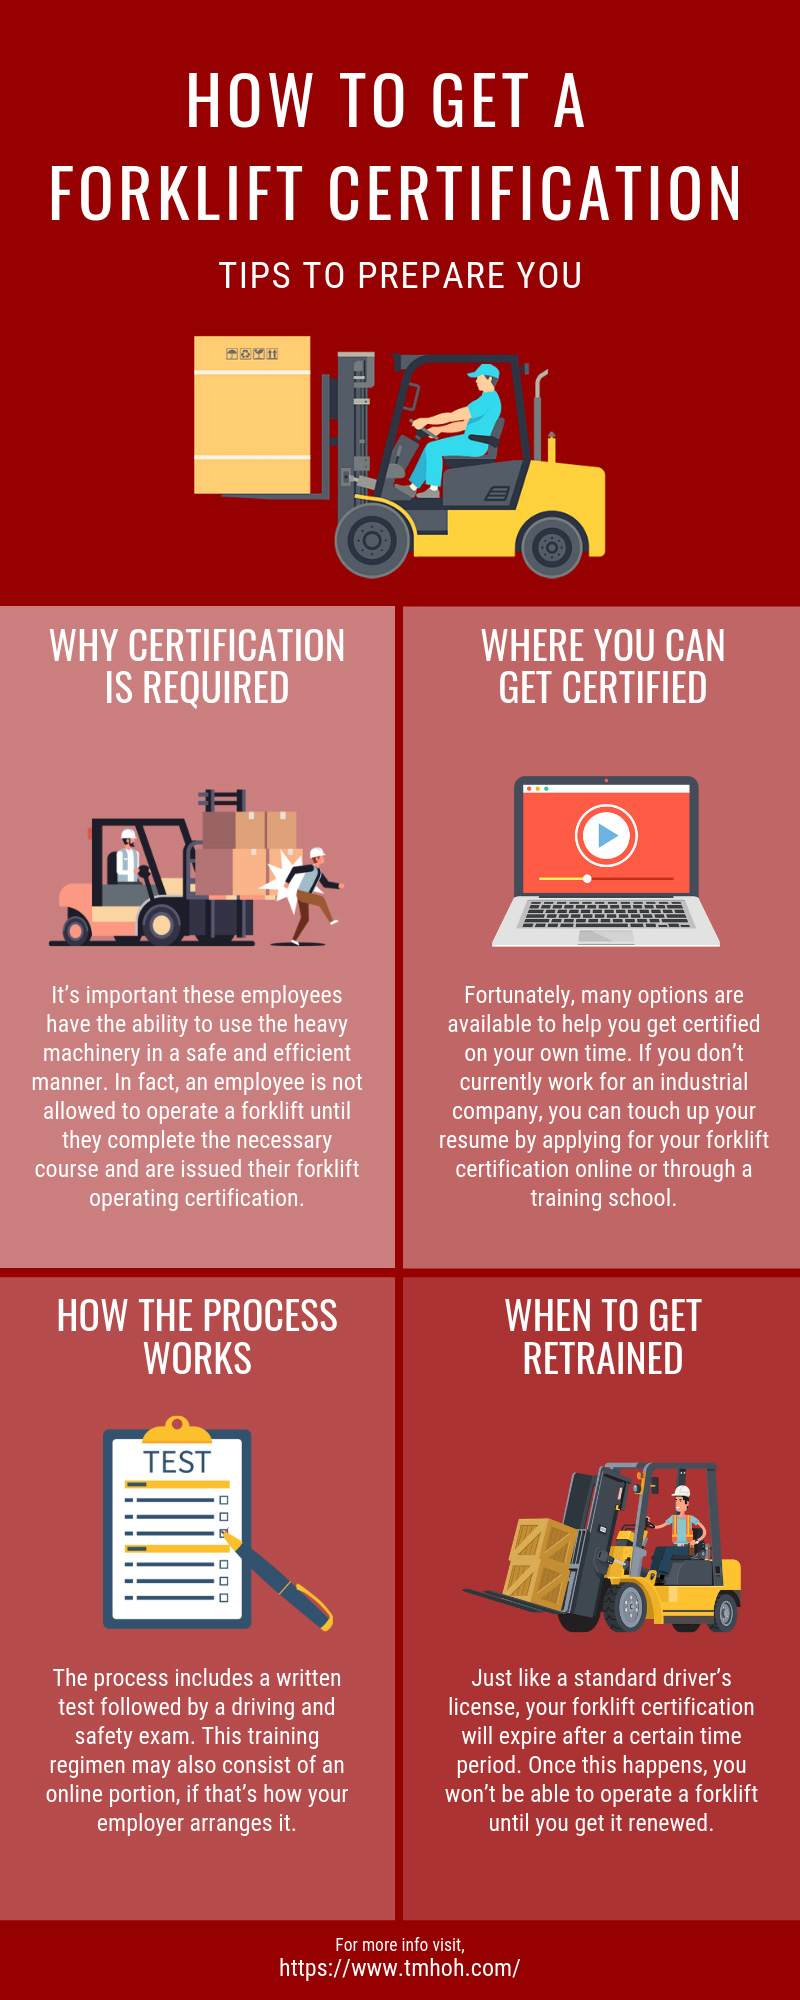 How To Get A Forklift Certification Tips To Prepare You